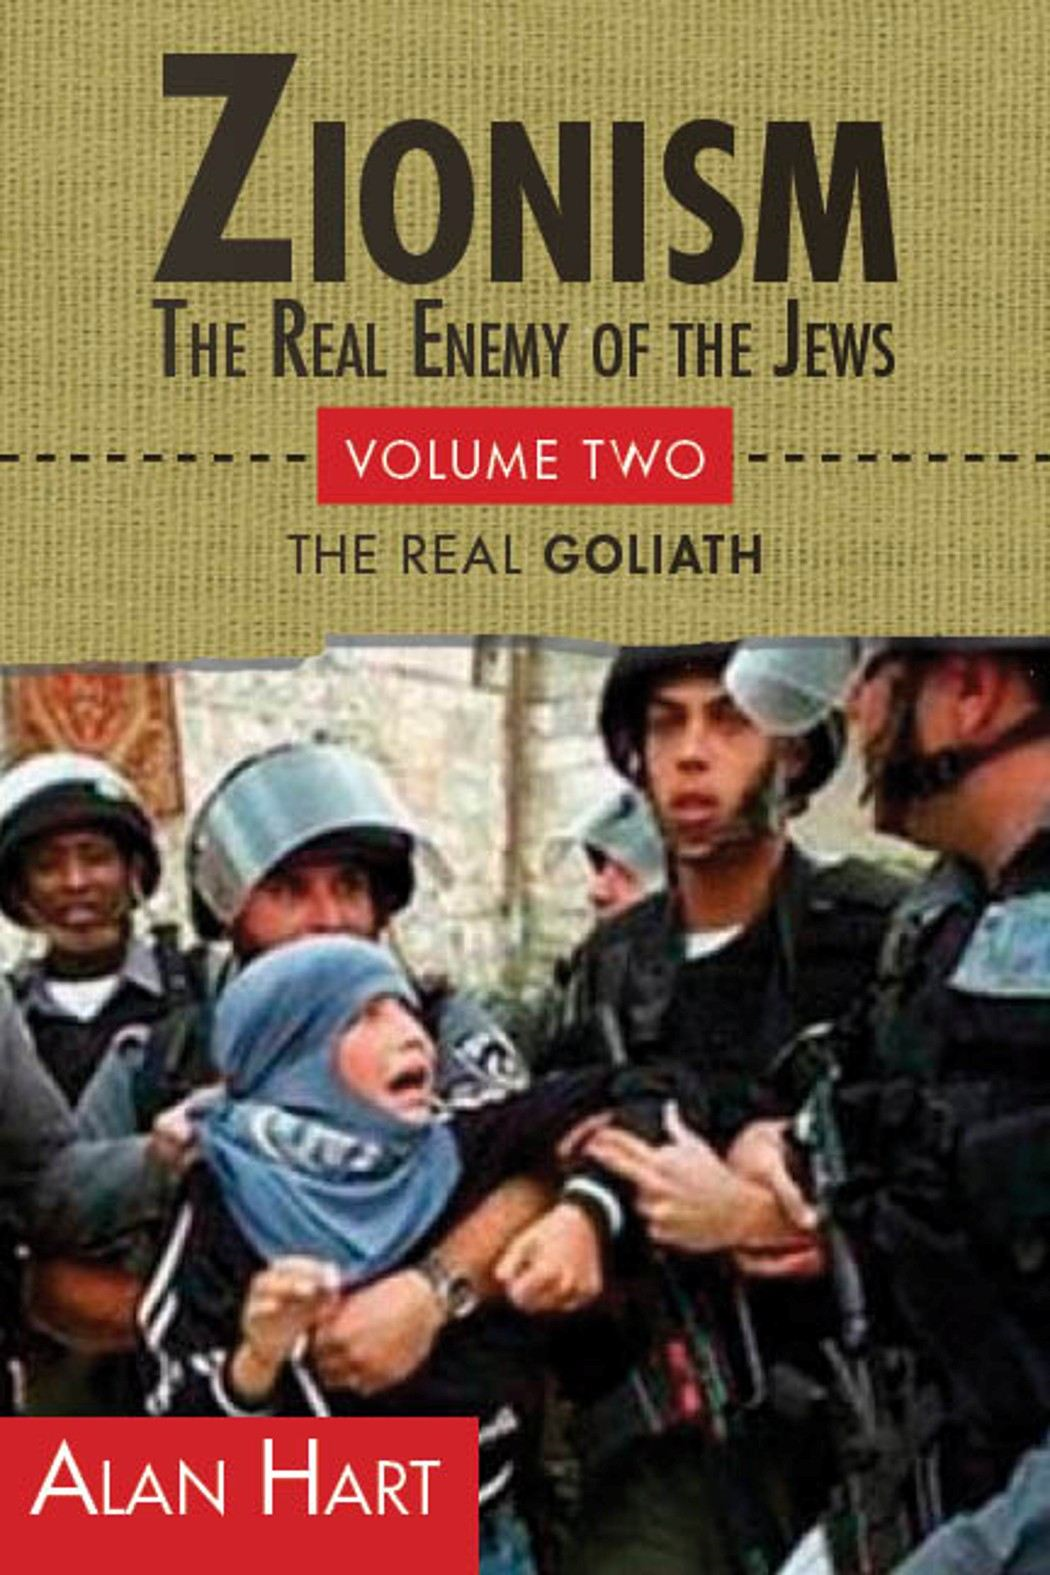 Zionism: The Real Enemy of the Jews, Volume 2